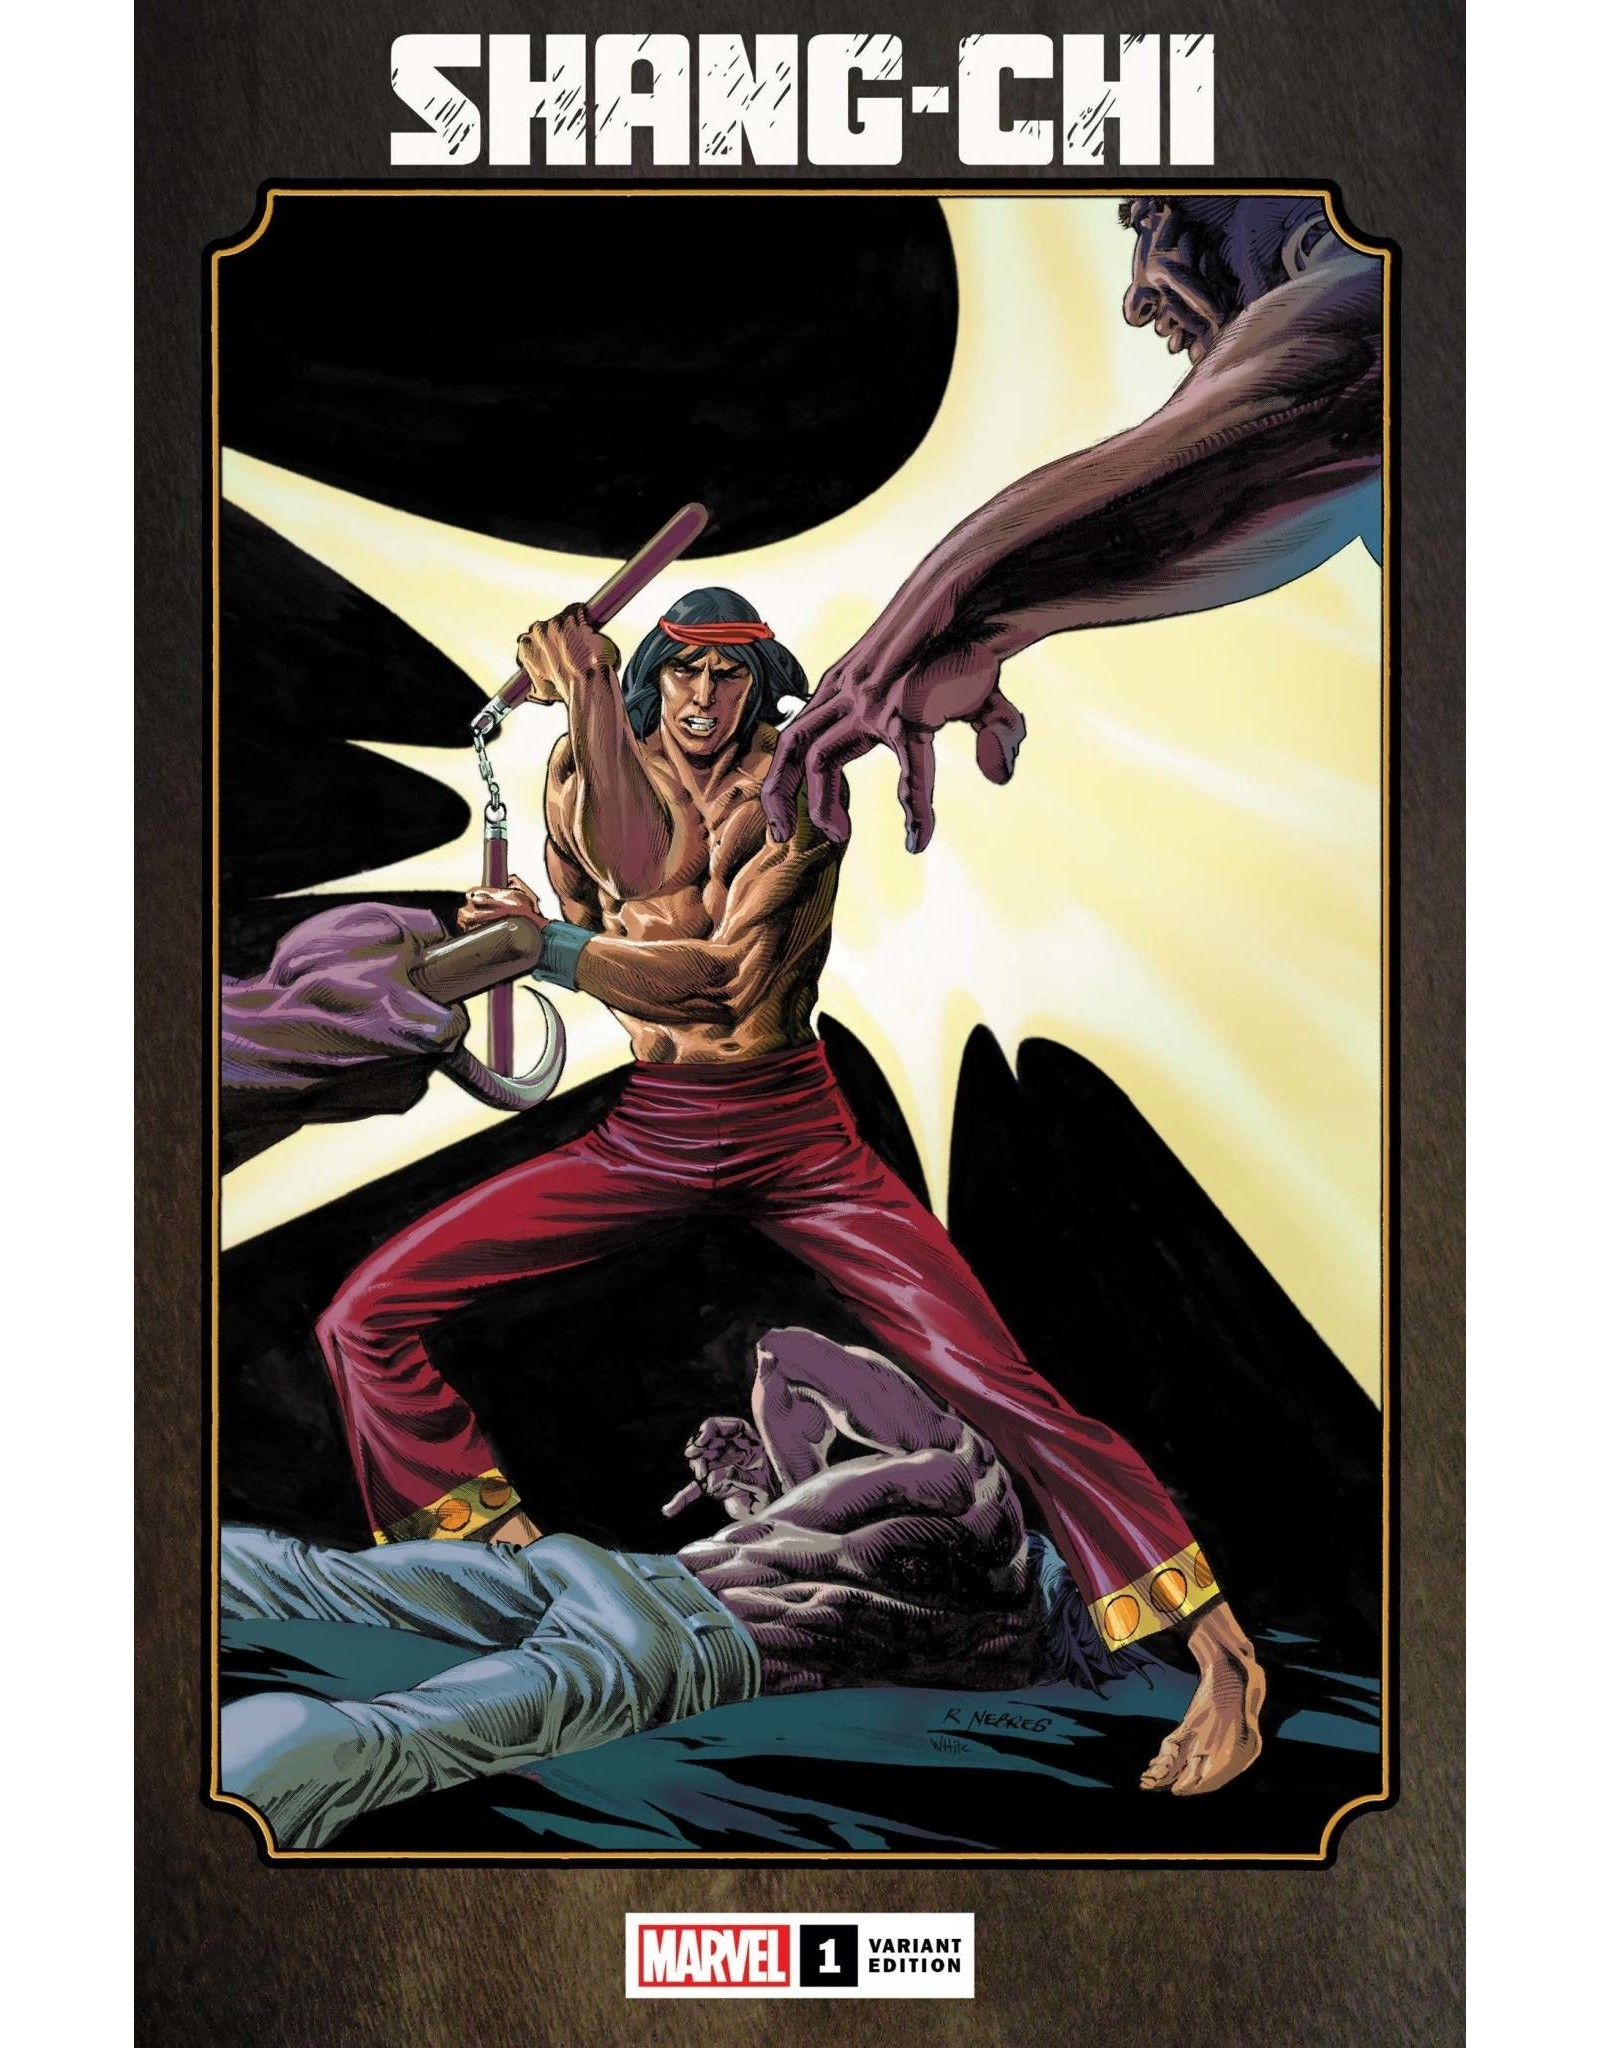 Marvel Comics SHANG-CHI #1 (OF 5) HIDDEN GEM VAR